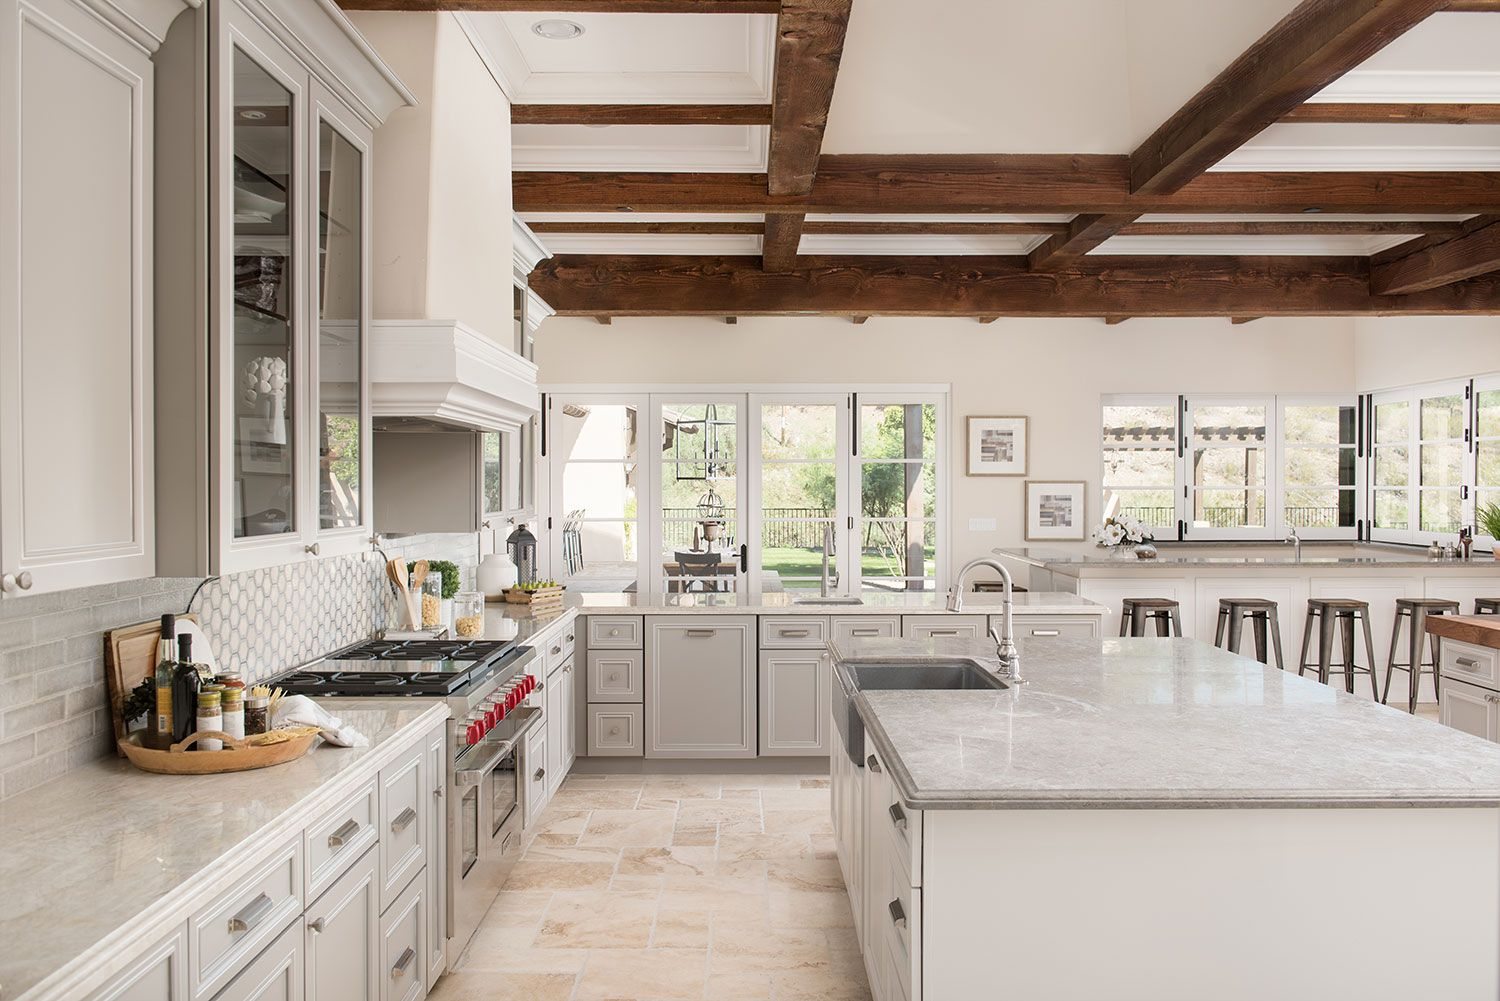 This Bright Kitchen With Lots Of Windows And Seating Uses The Corona Door Style In Gray Paint Wi Mexican Style Kitchens Bright Kitchens Custom Kitchen Cabinets